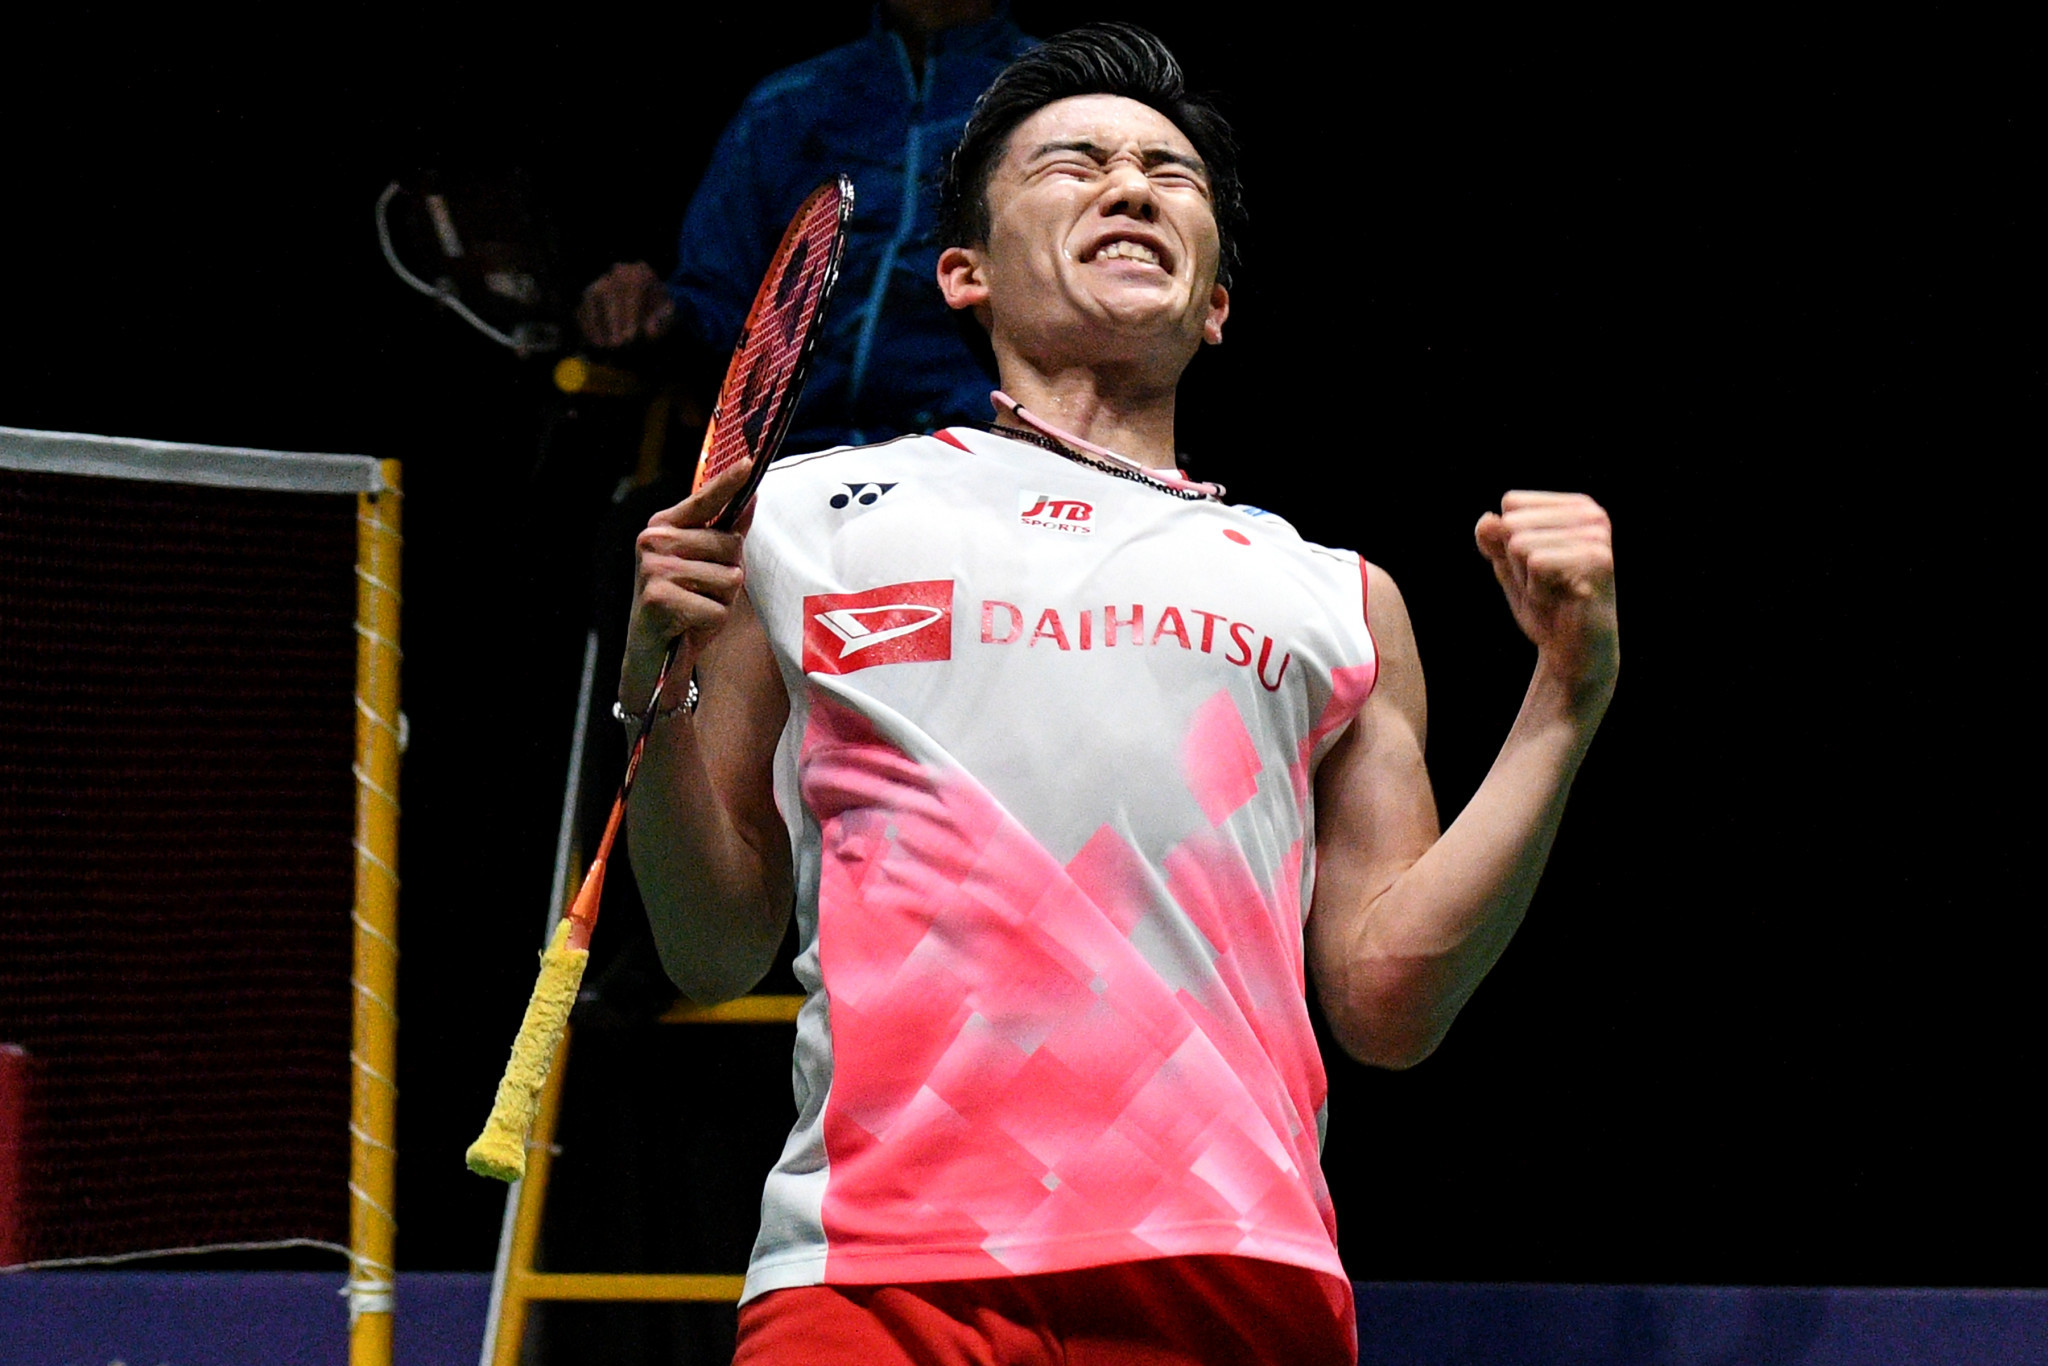 Japan's hope Momota starts Olympic year with tournament win at BWF Malaysia Masters